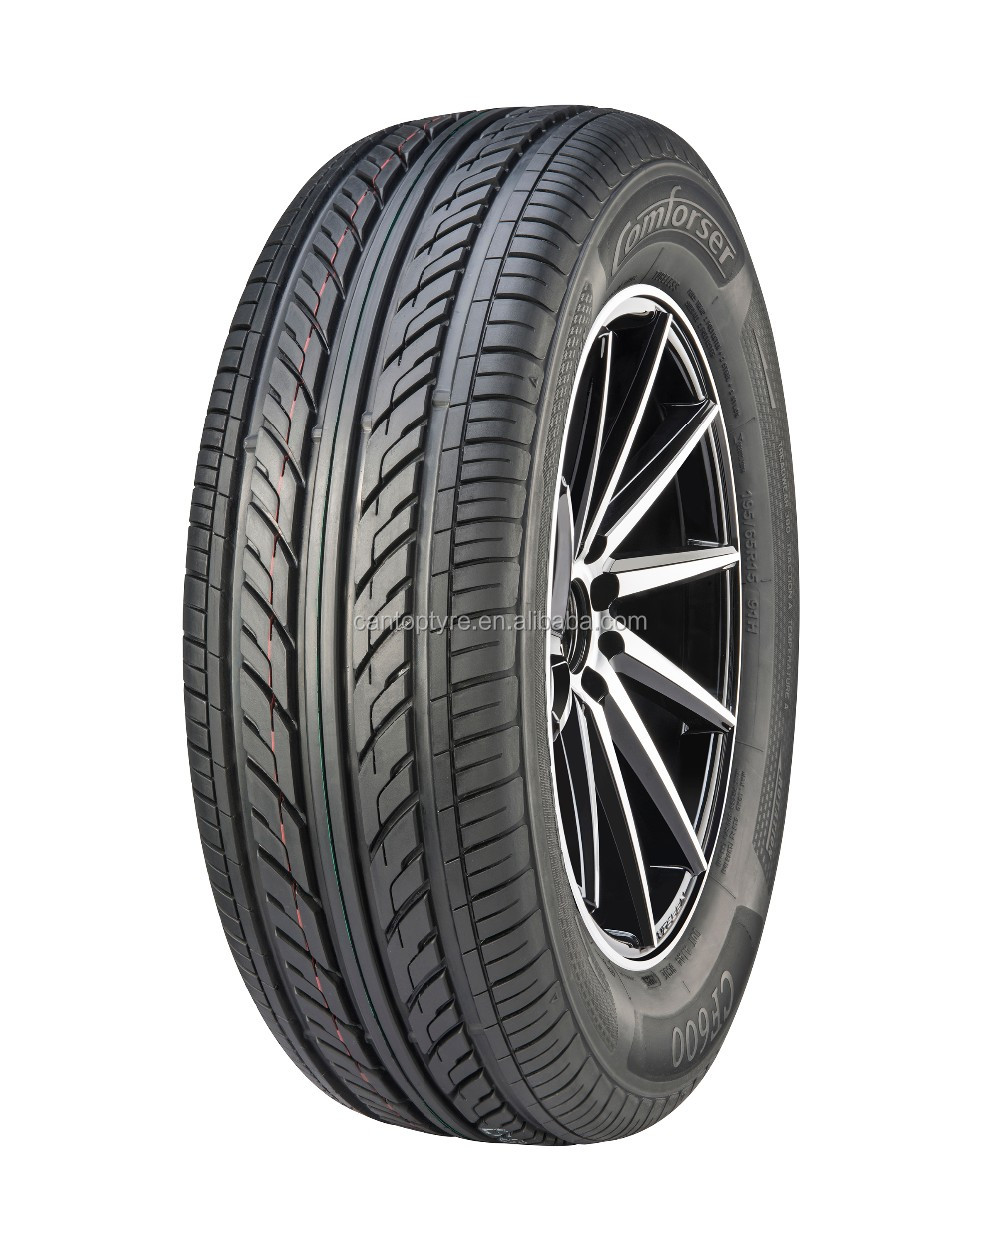 buy direct from china chinese cheap car tires 215/65r16 225/65r17